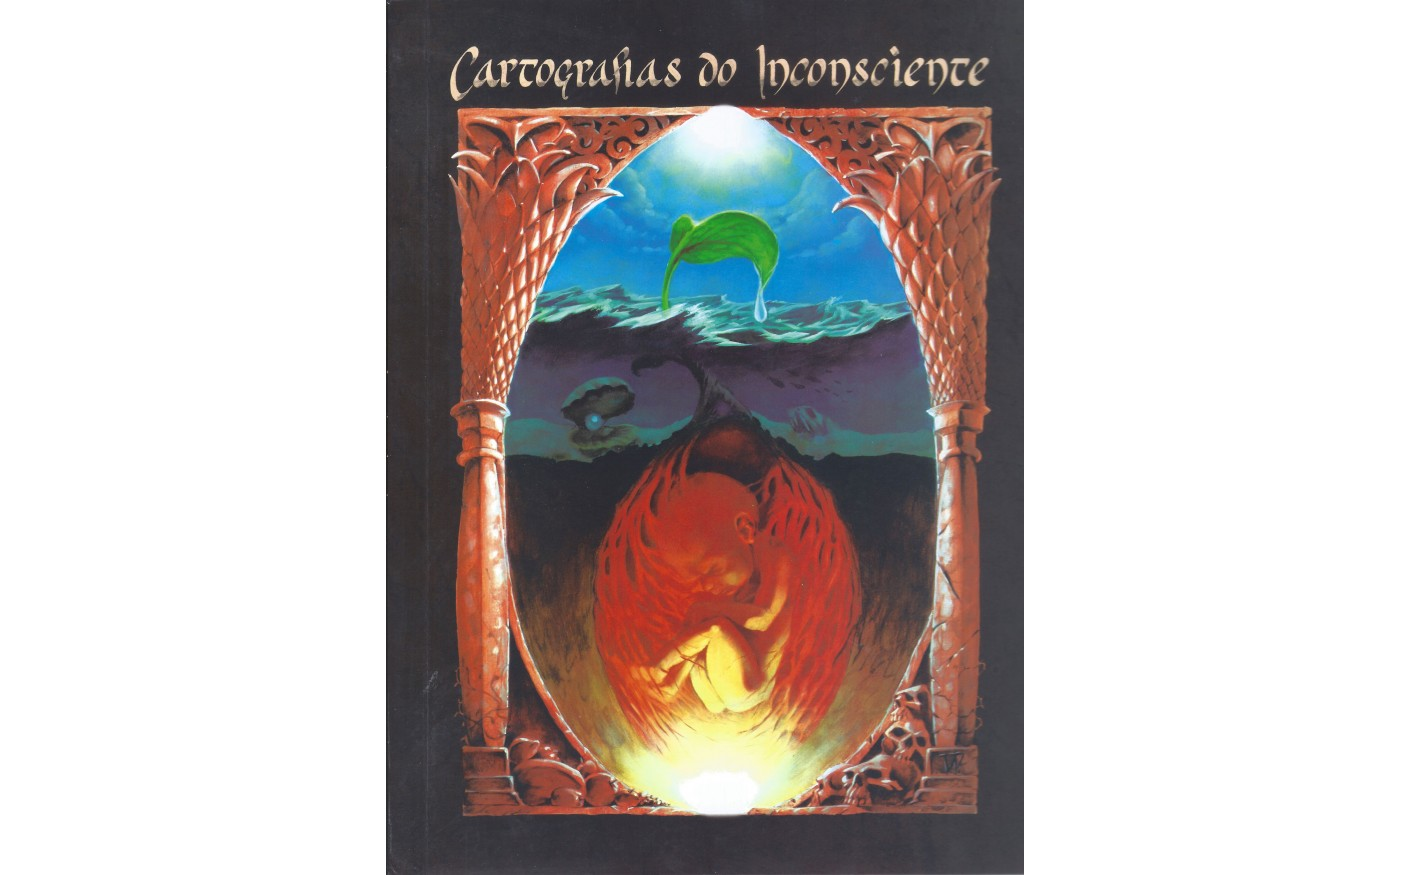 CARTOGRAHAS-do-INCONSCIENZA